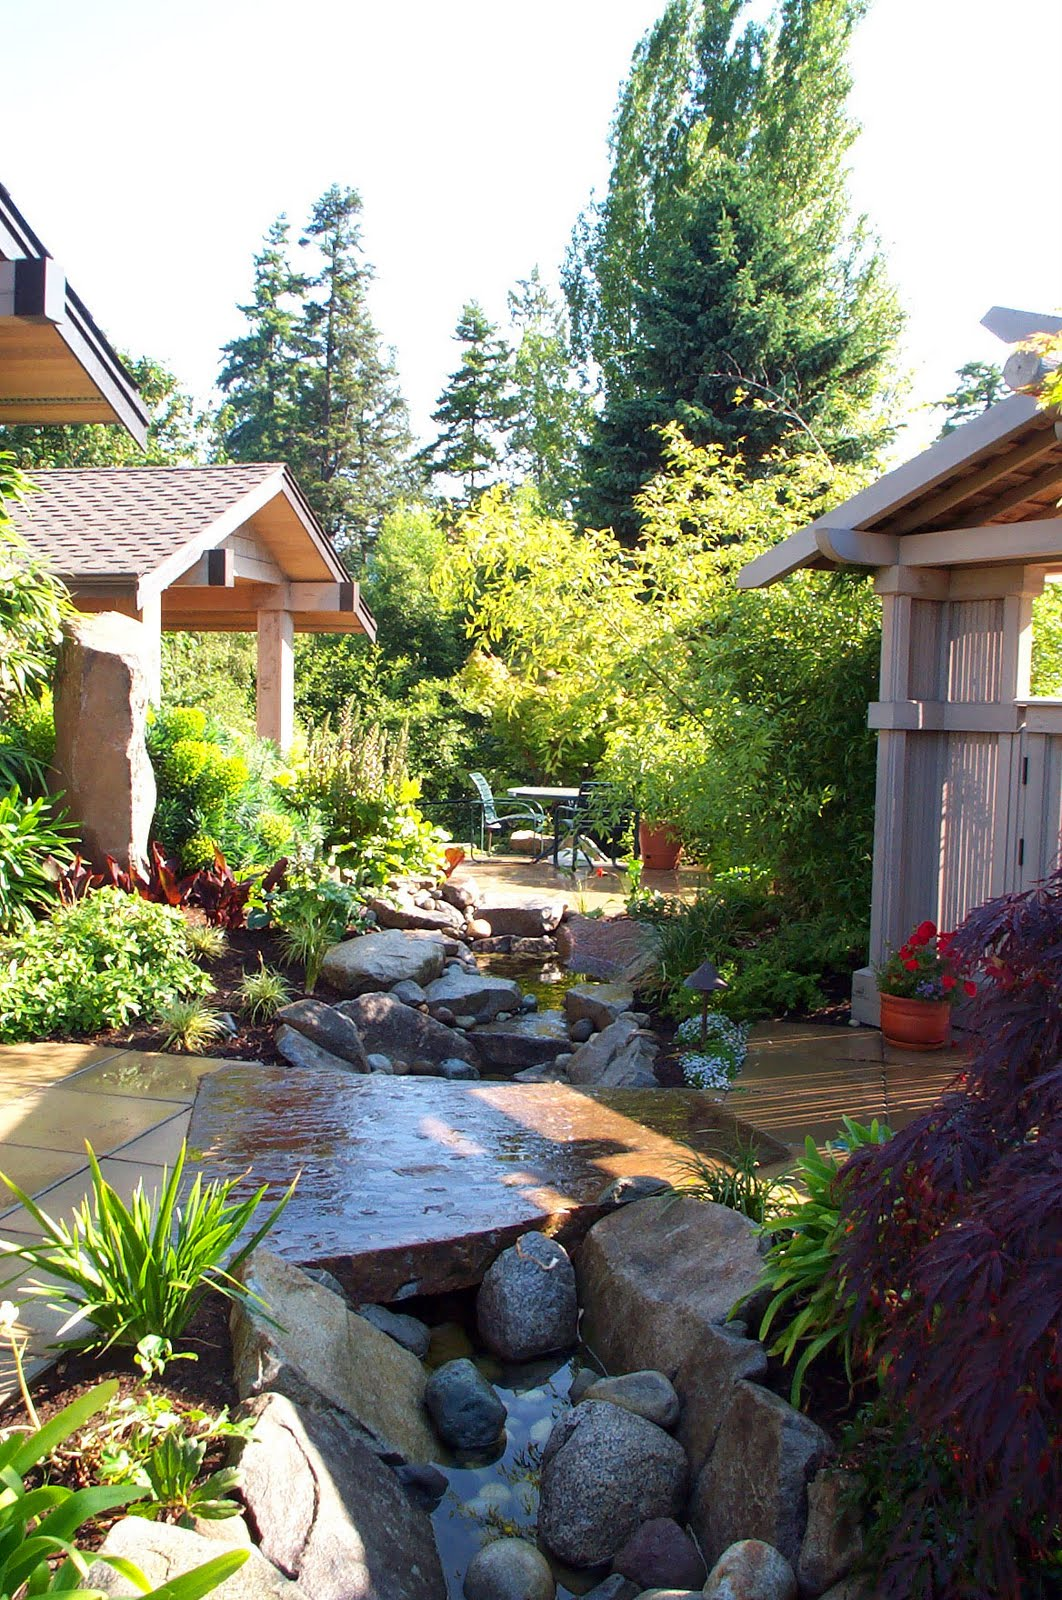 House Designs: Asian Style Landscape Northwest Home Style ... on Mansion Backyard Ideas id=60384